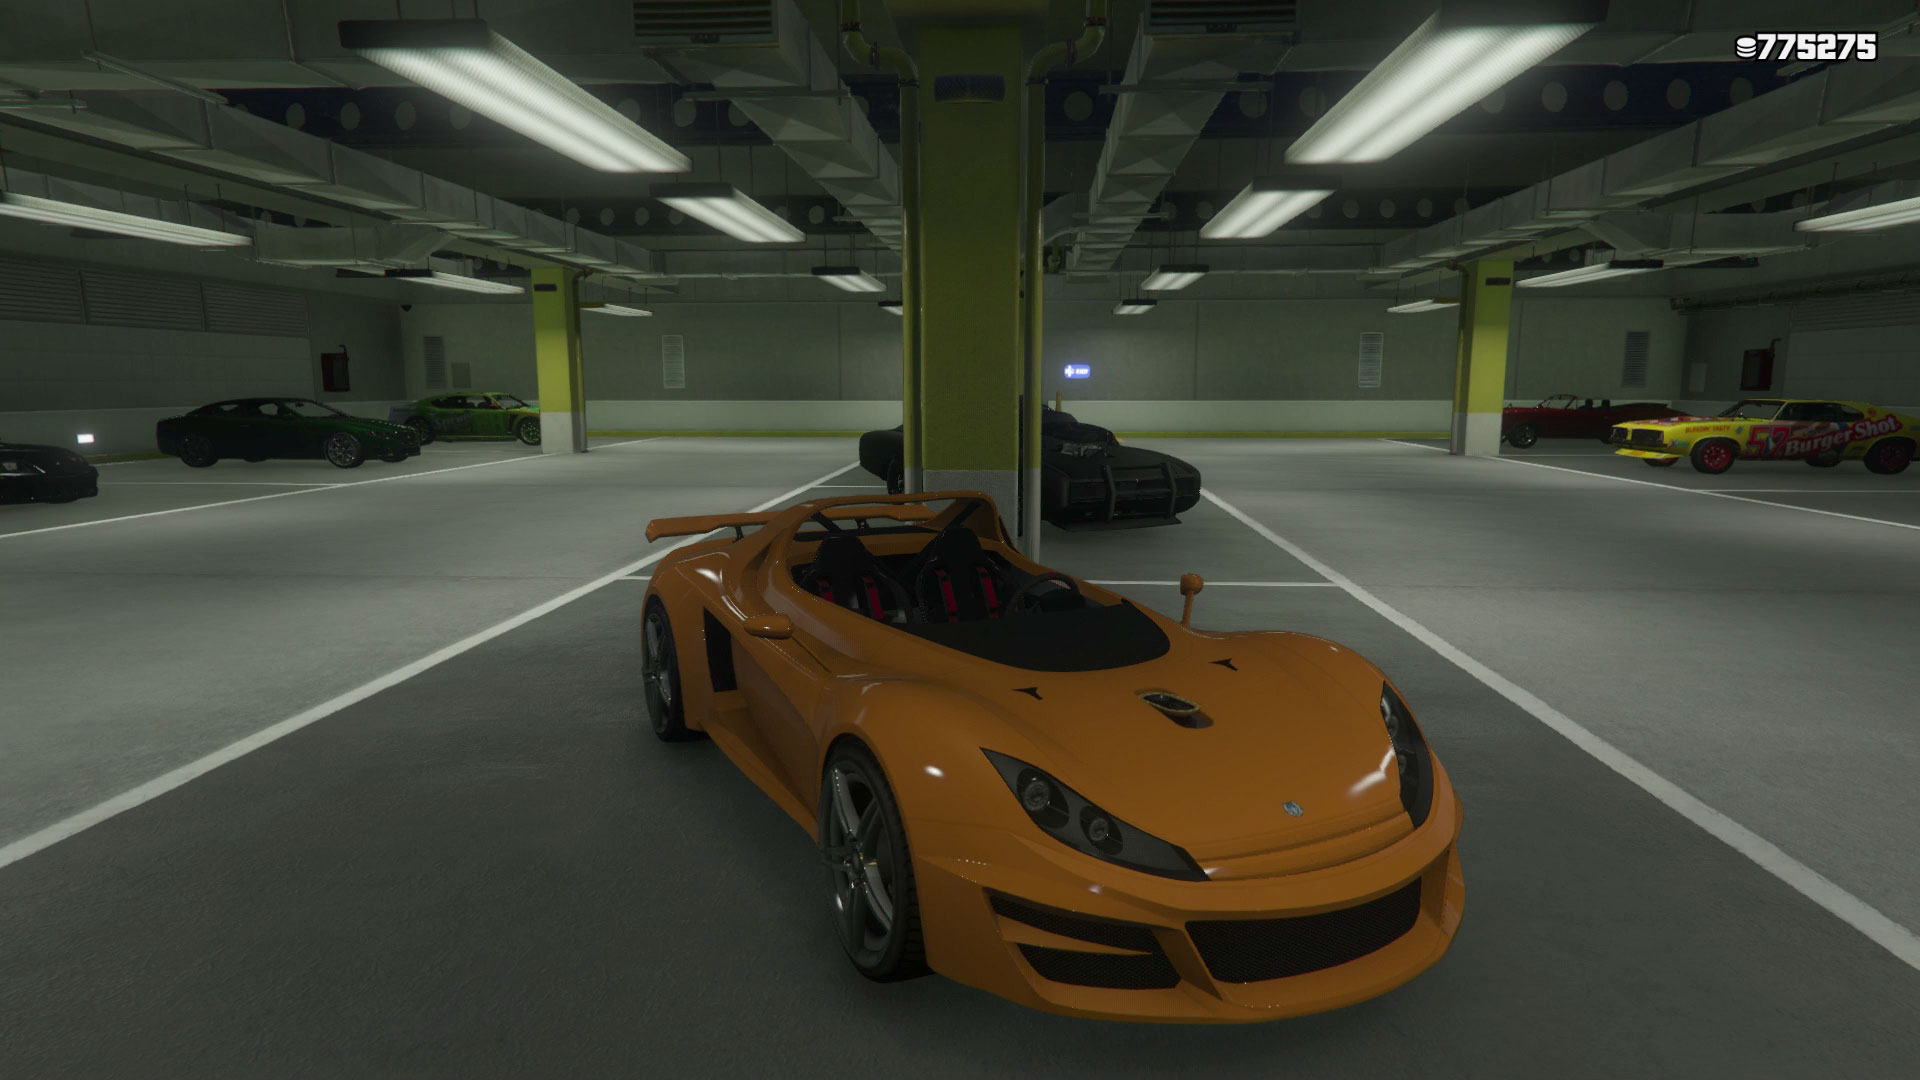 Gta 5 How To Buy Cars In Gta Online And Stock Up Your Garage Gamesradar